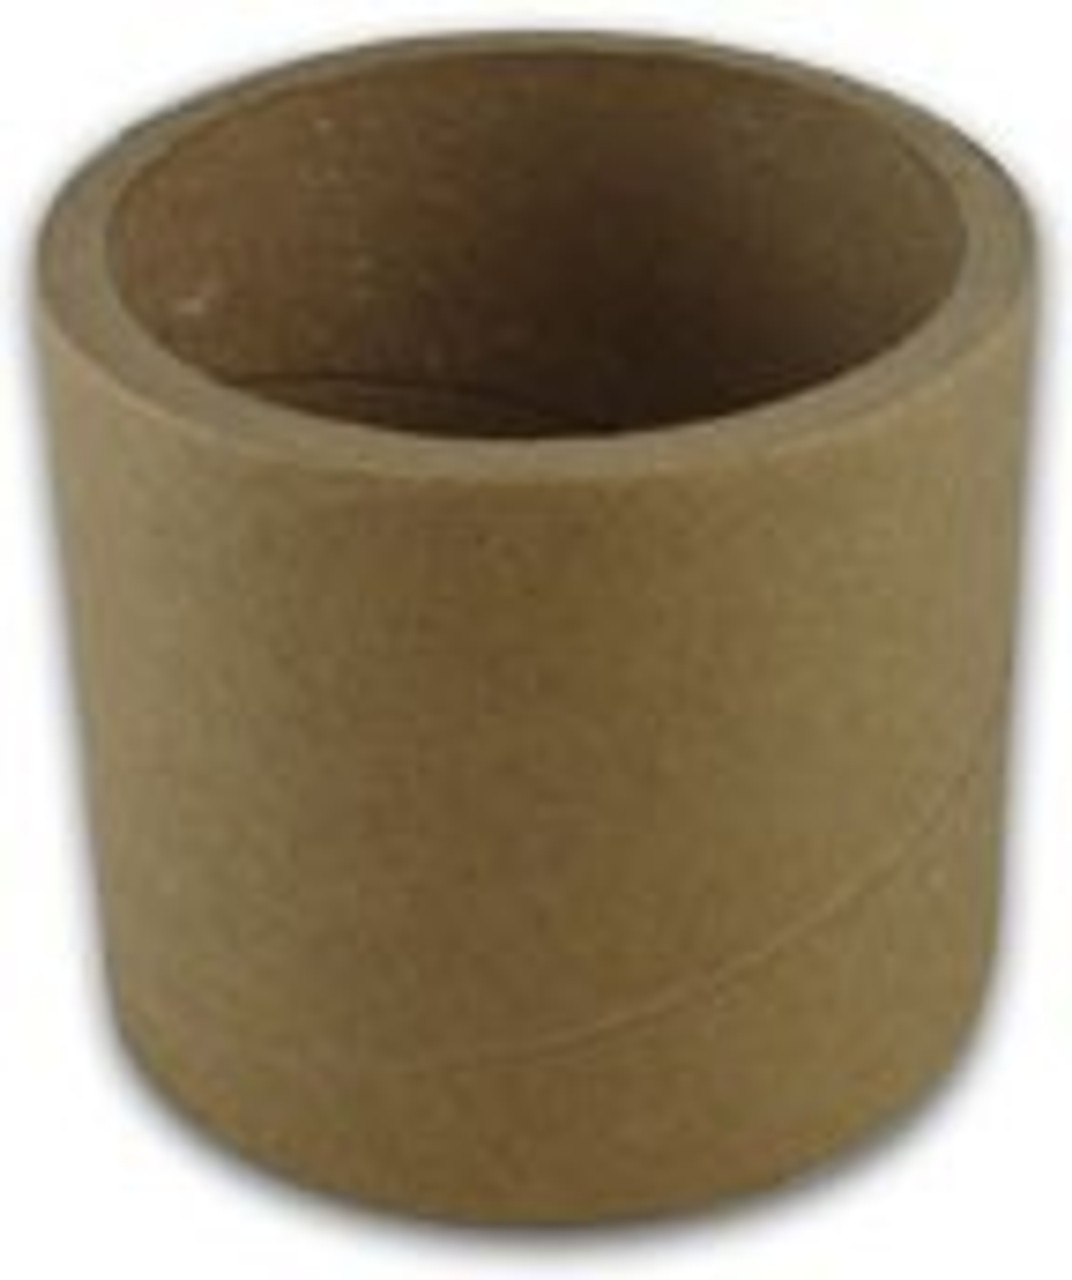 "Empty Cores 3"" X 3 1/8"" wide - Box of 50 